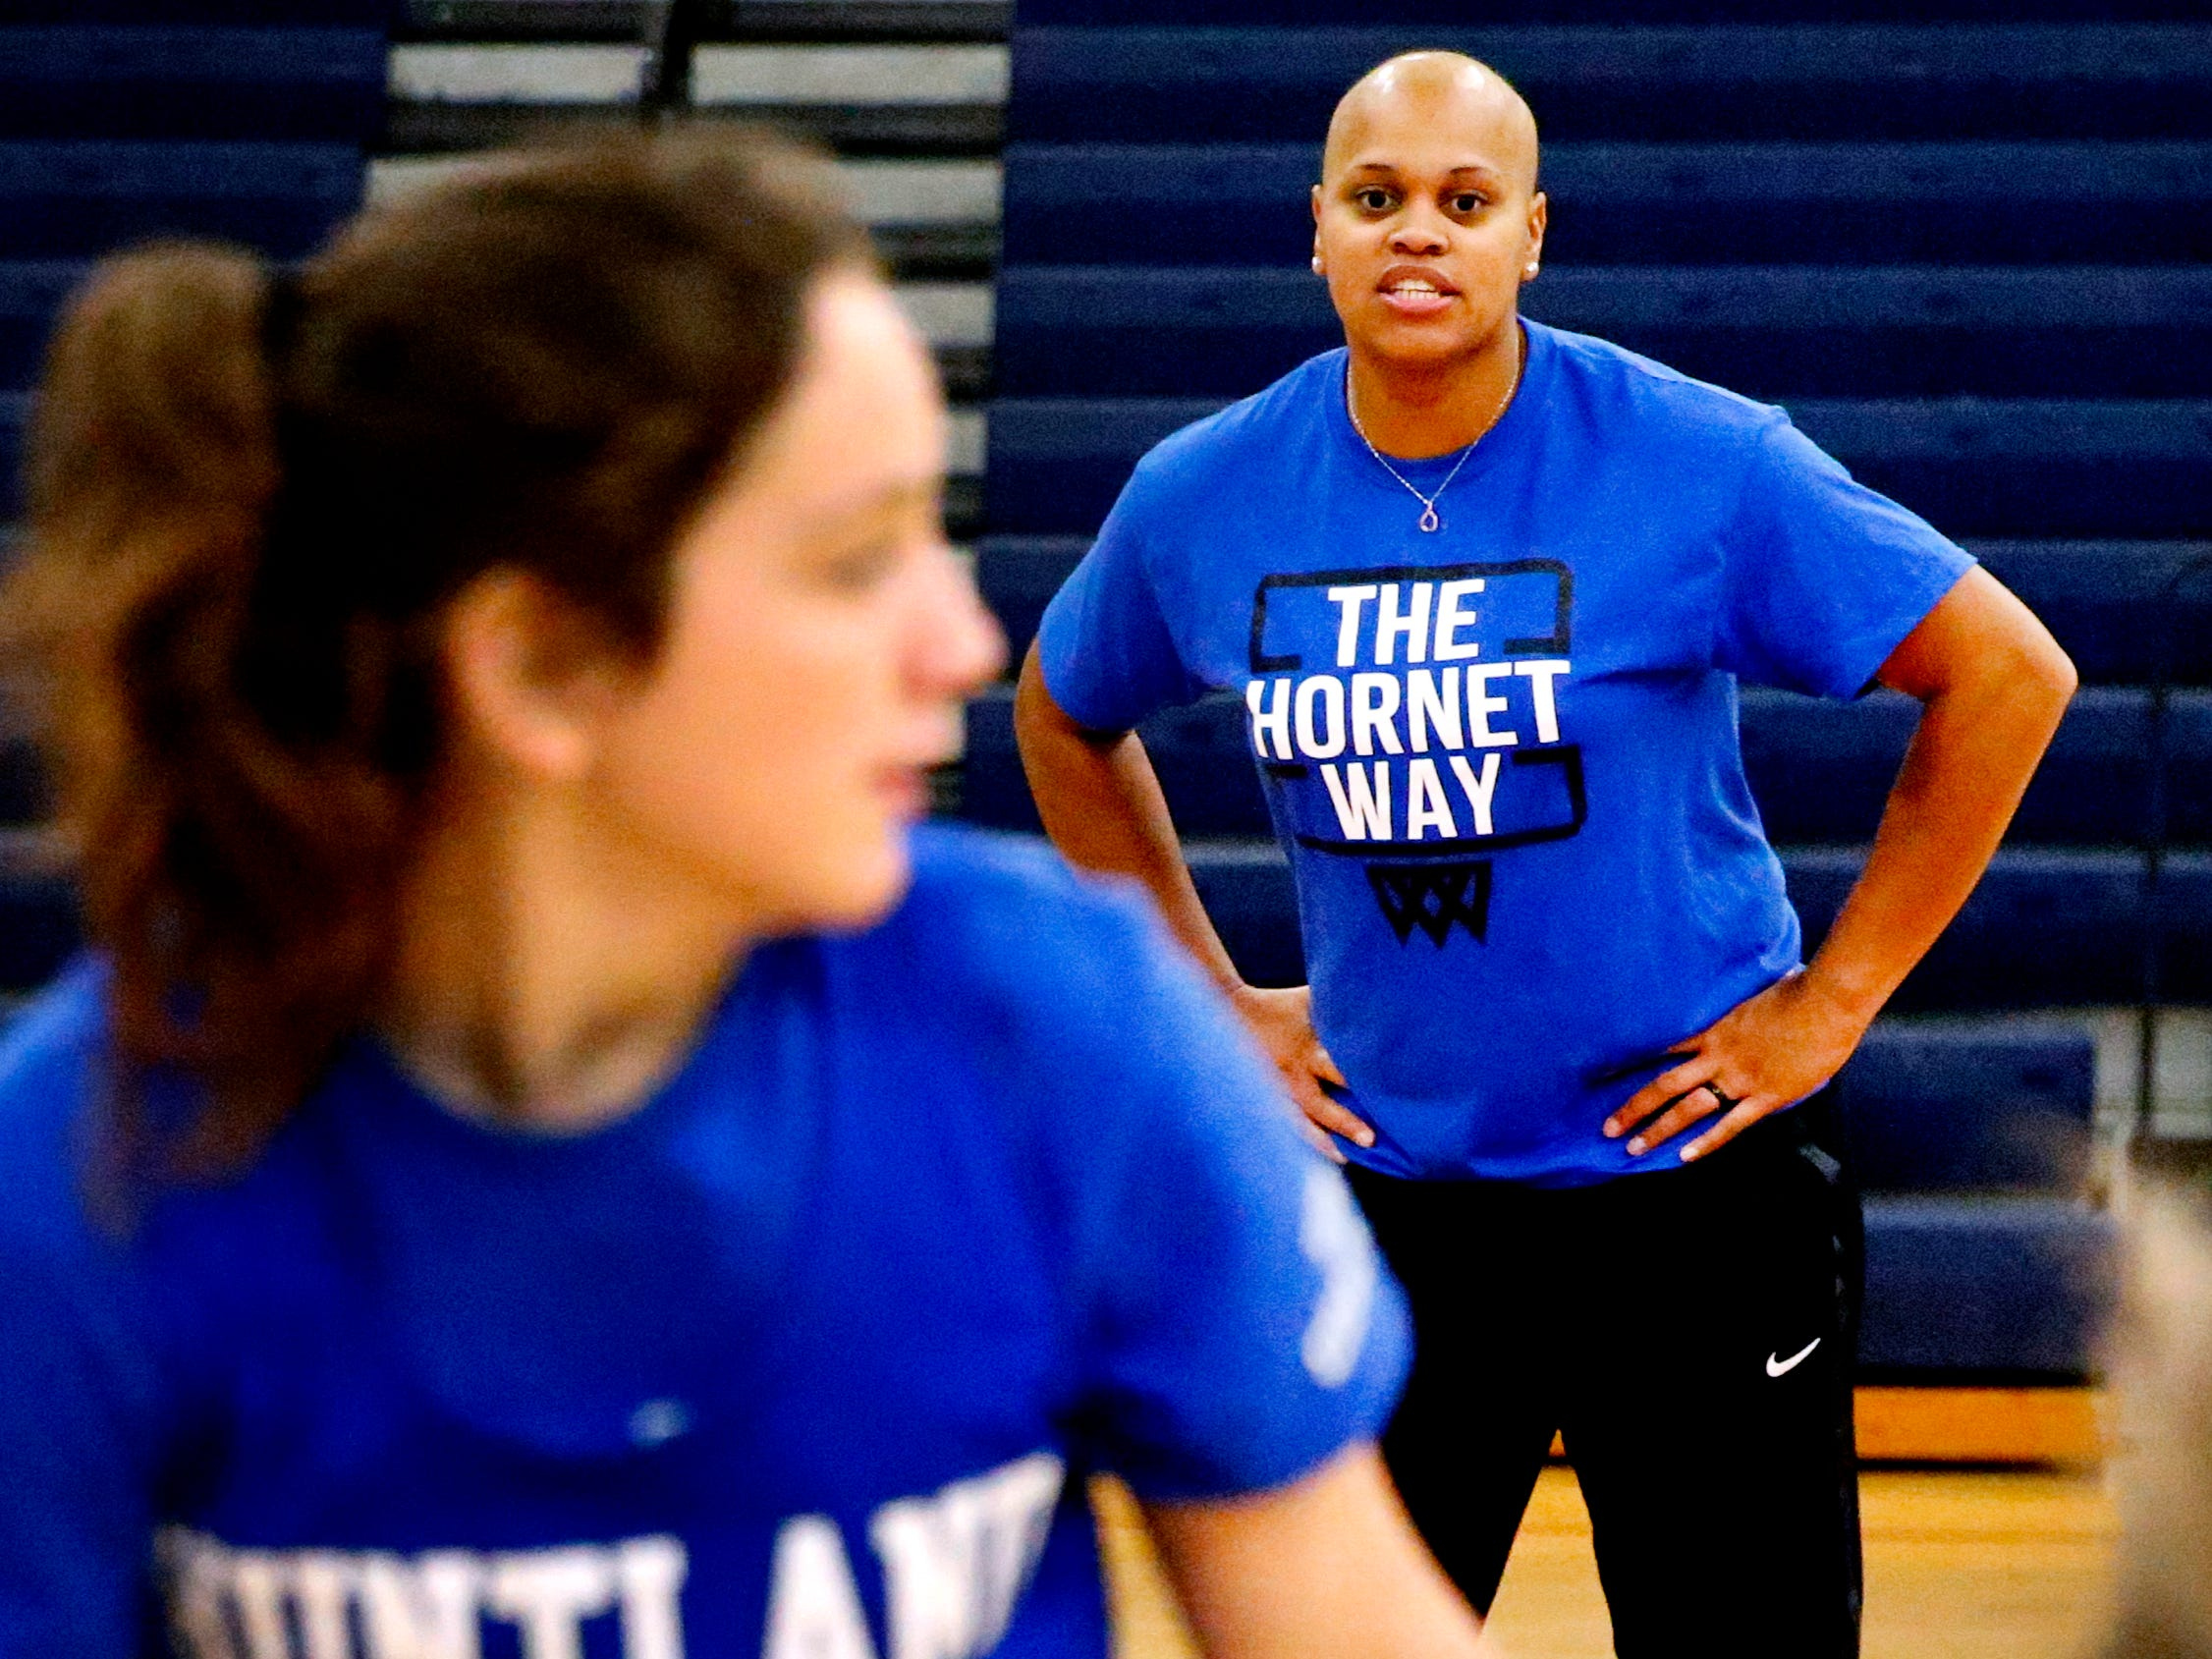 Coach Tia Stovall instructs Aubrie Suhr (24) and Morgan Sanders (14) during Huntland middle school girls basketball practice on Tuesday, Nov. 13, 2018, despite undergoing breast cancer treatment.